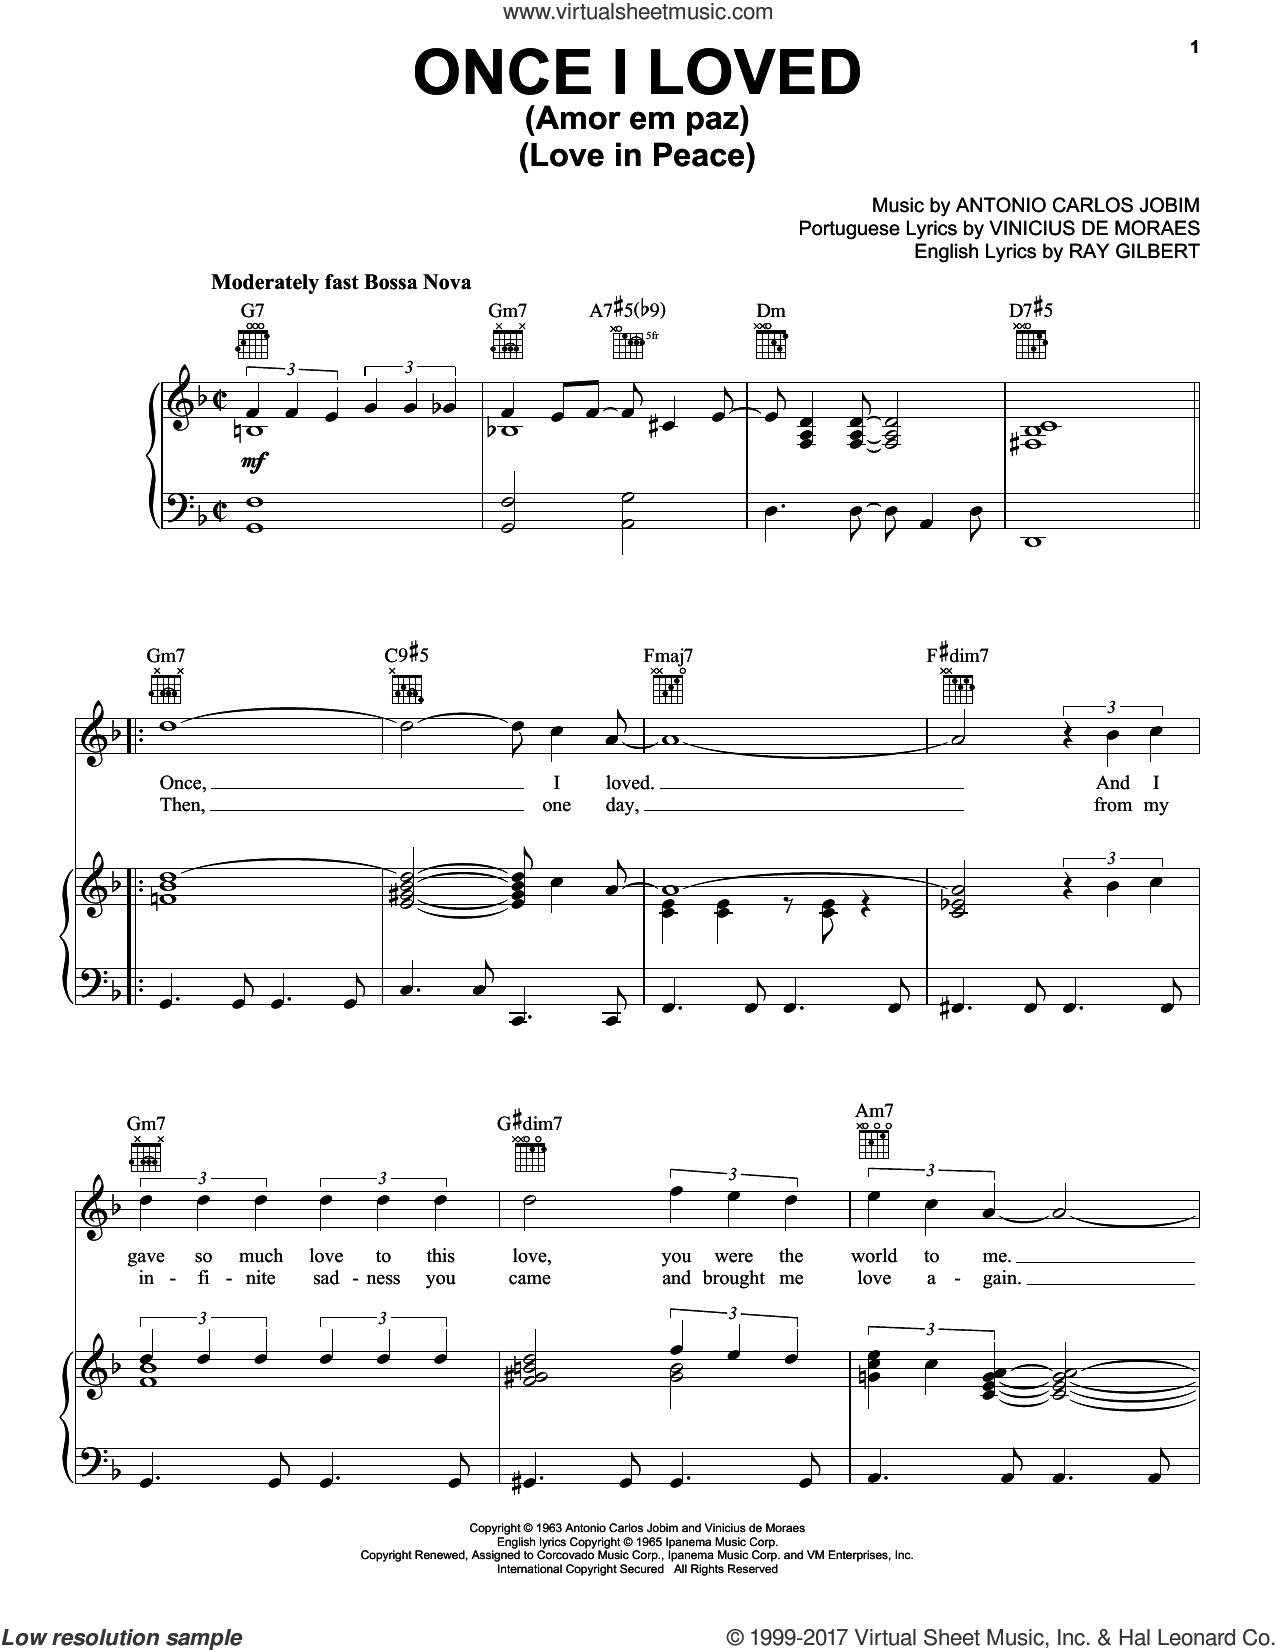 Once I Loved (Amor Em Paz) (Love In Peace) sheet music for voice, piano or guitar by Antonio Carlos Jobim, Frank Sinatra and Vinicius de Moraes, intermediate skill level